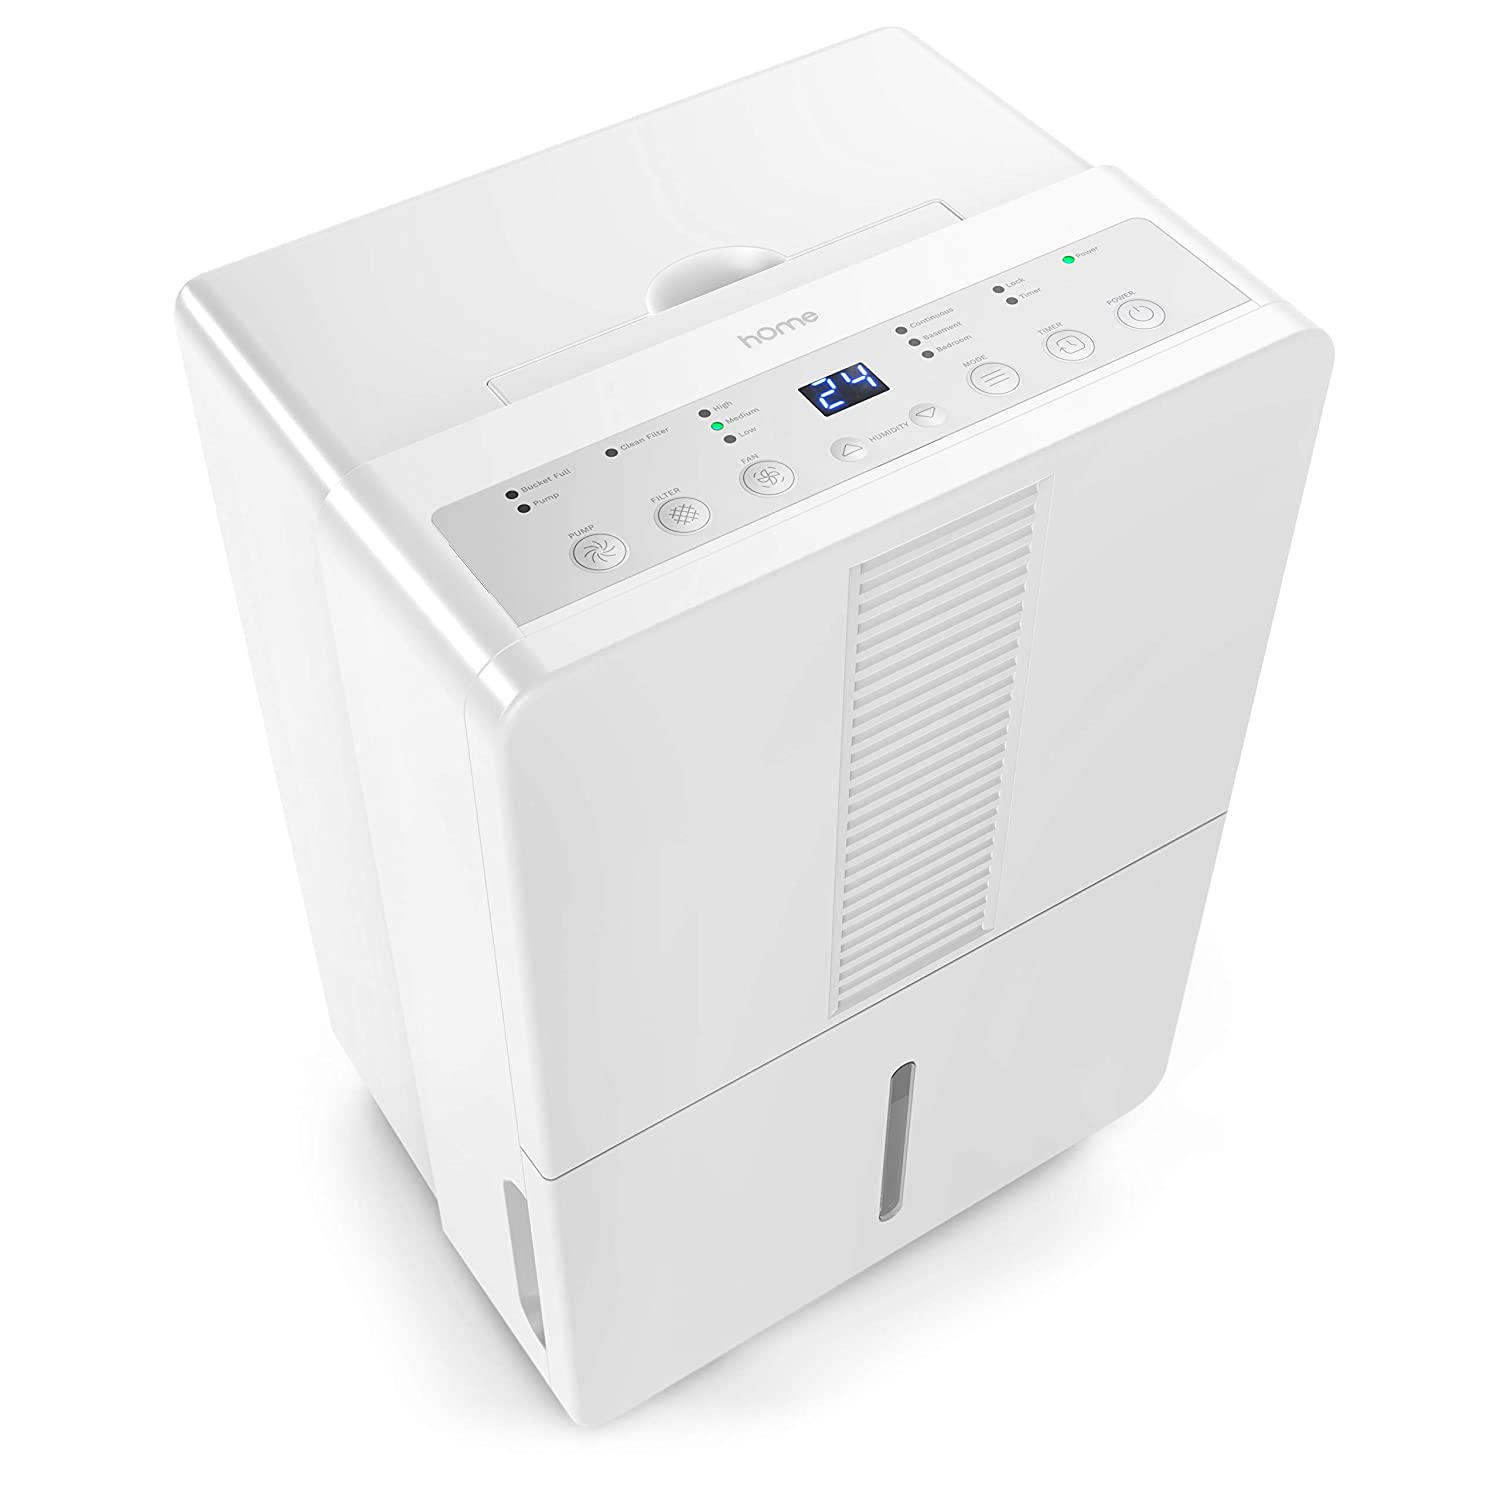 hOmeLabs 70 Pint Dehumidifier Featuring Intelligent Humidity Control with Pump Ideal for Large-Sized Rooms and Basements to Remove Moisture-Related Mold Energy Star Rated Mildew and Allergens